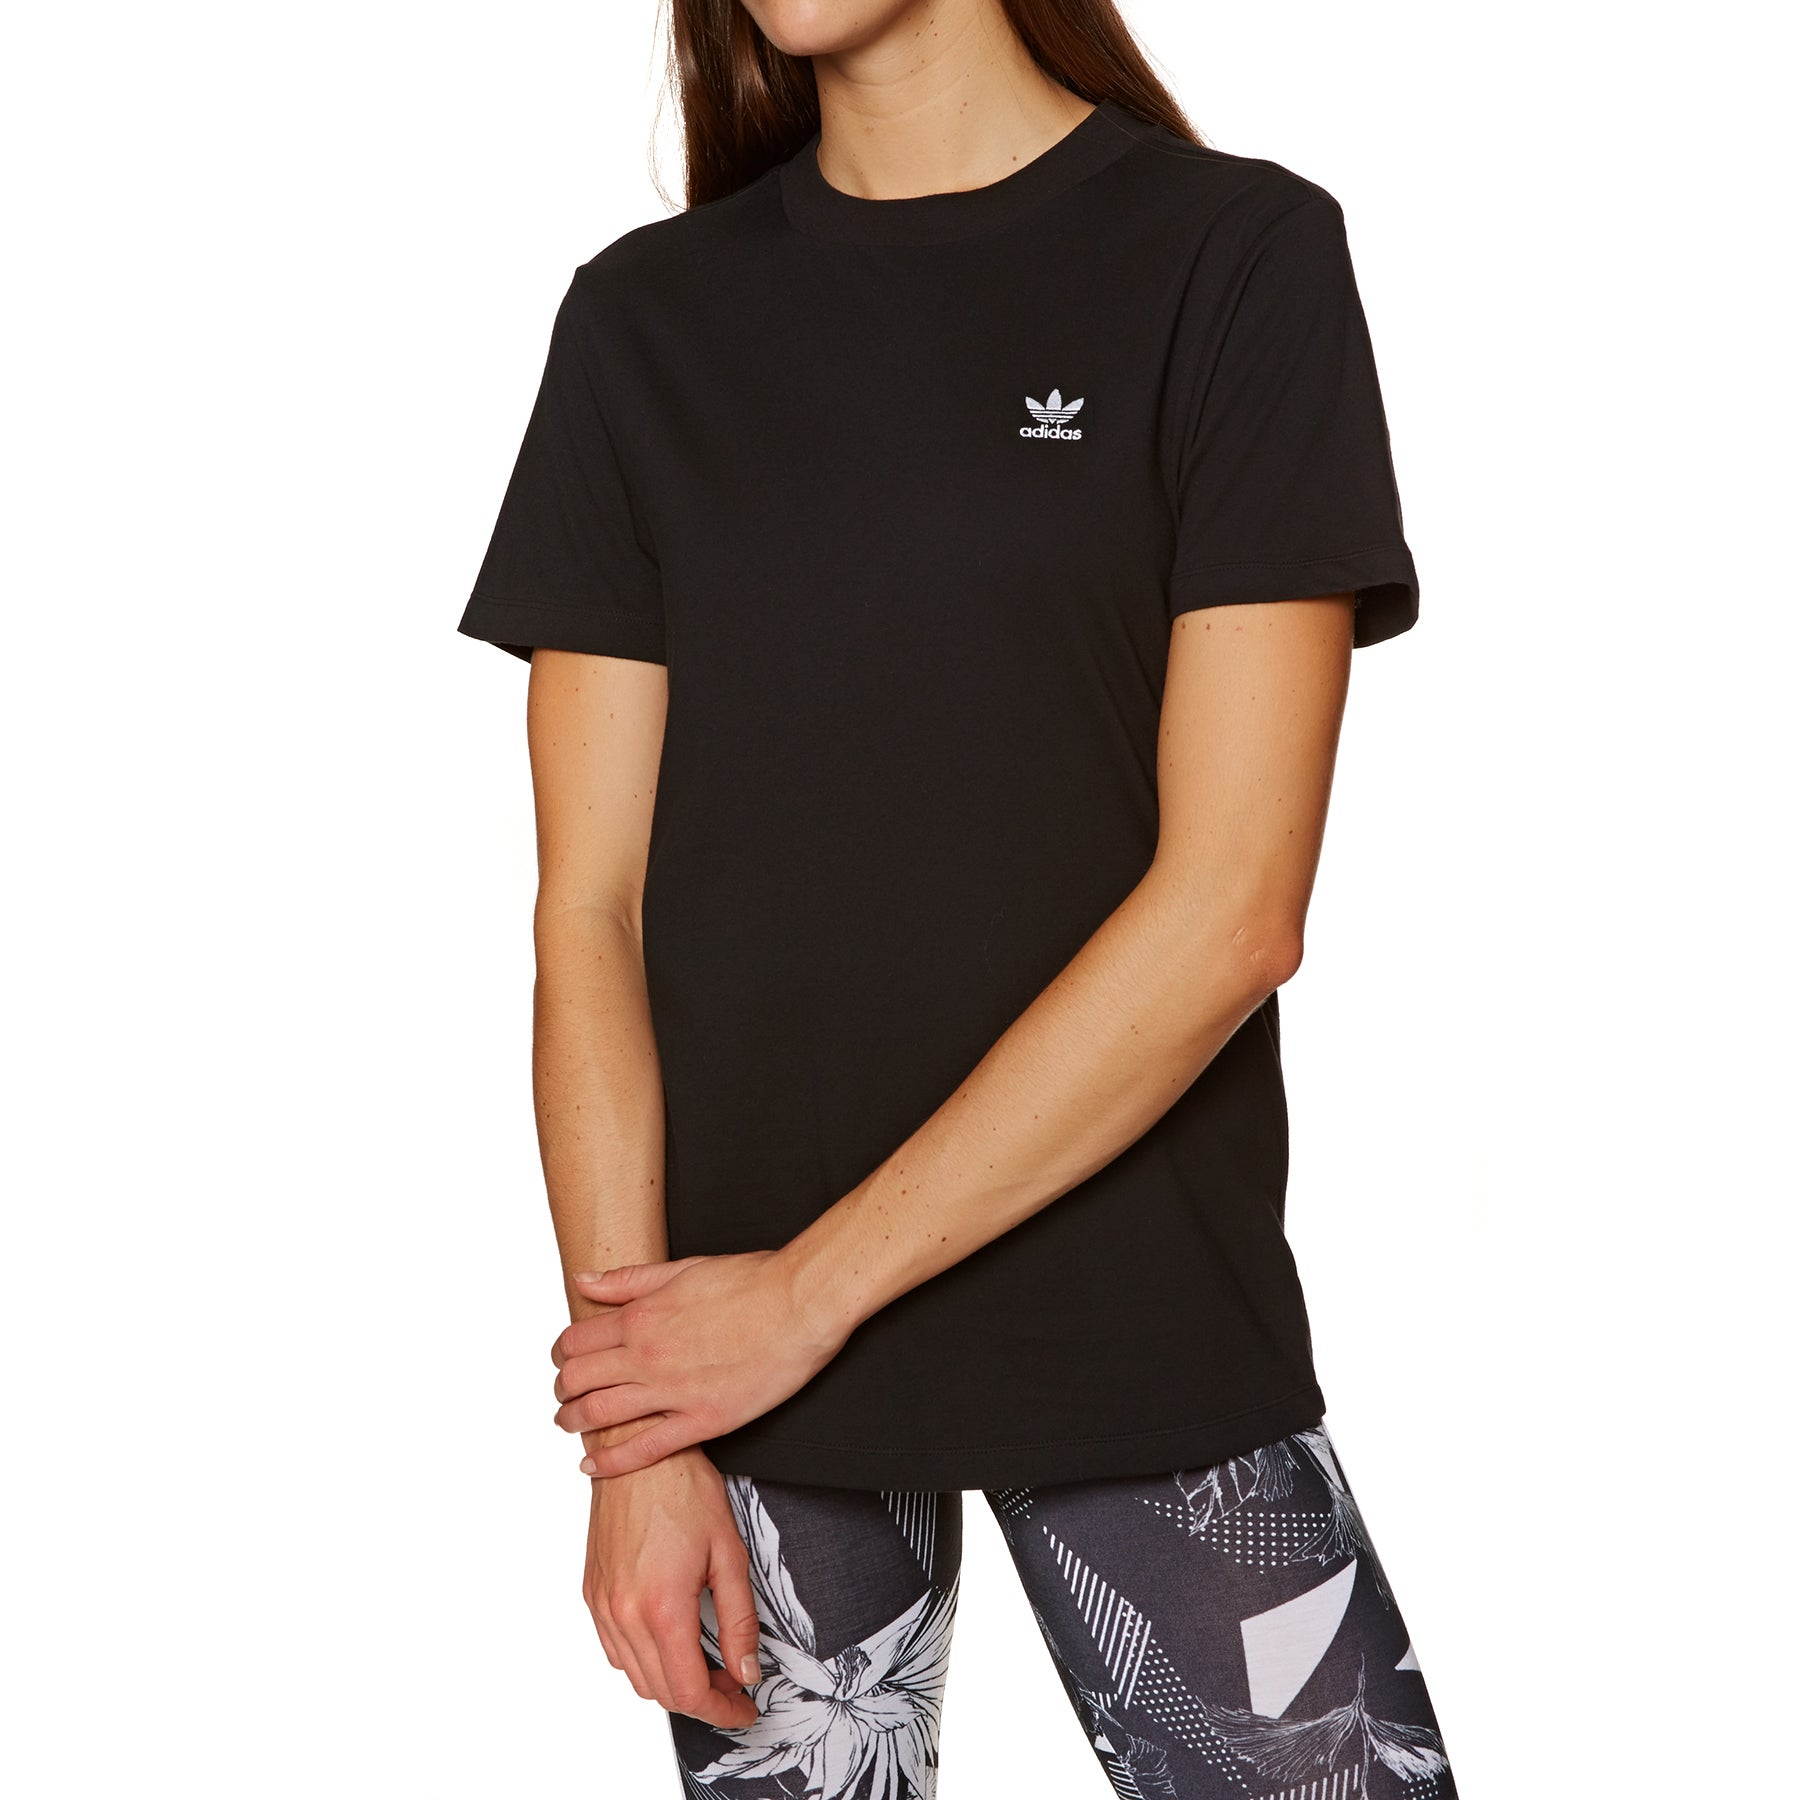 T-Shirt a Manica Corta Donna Adidas Originals Complements - Black